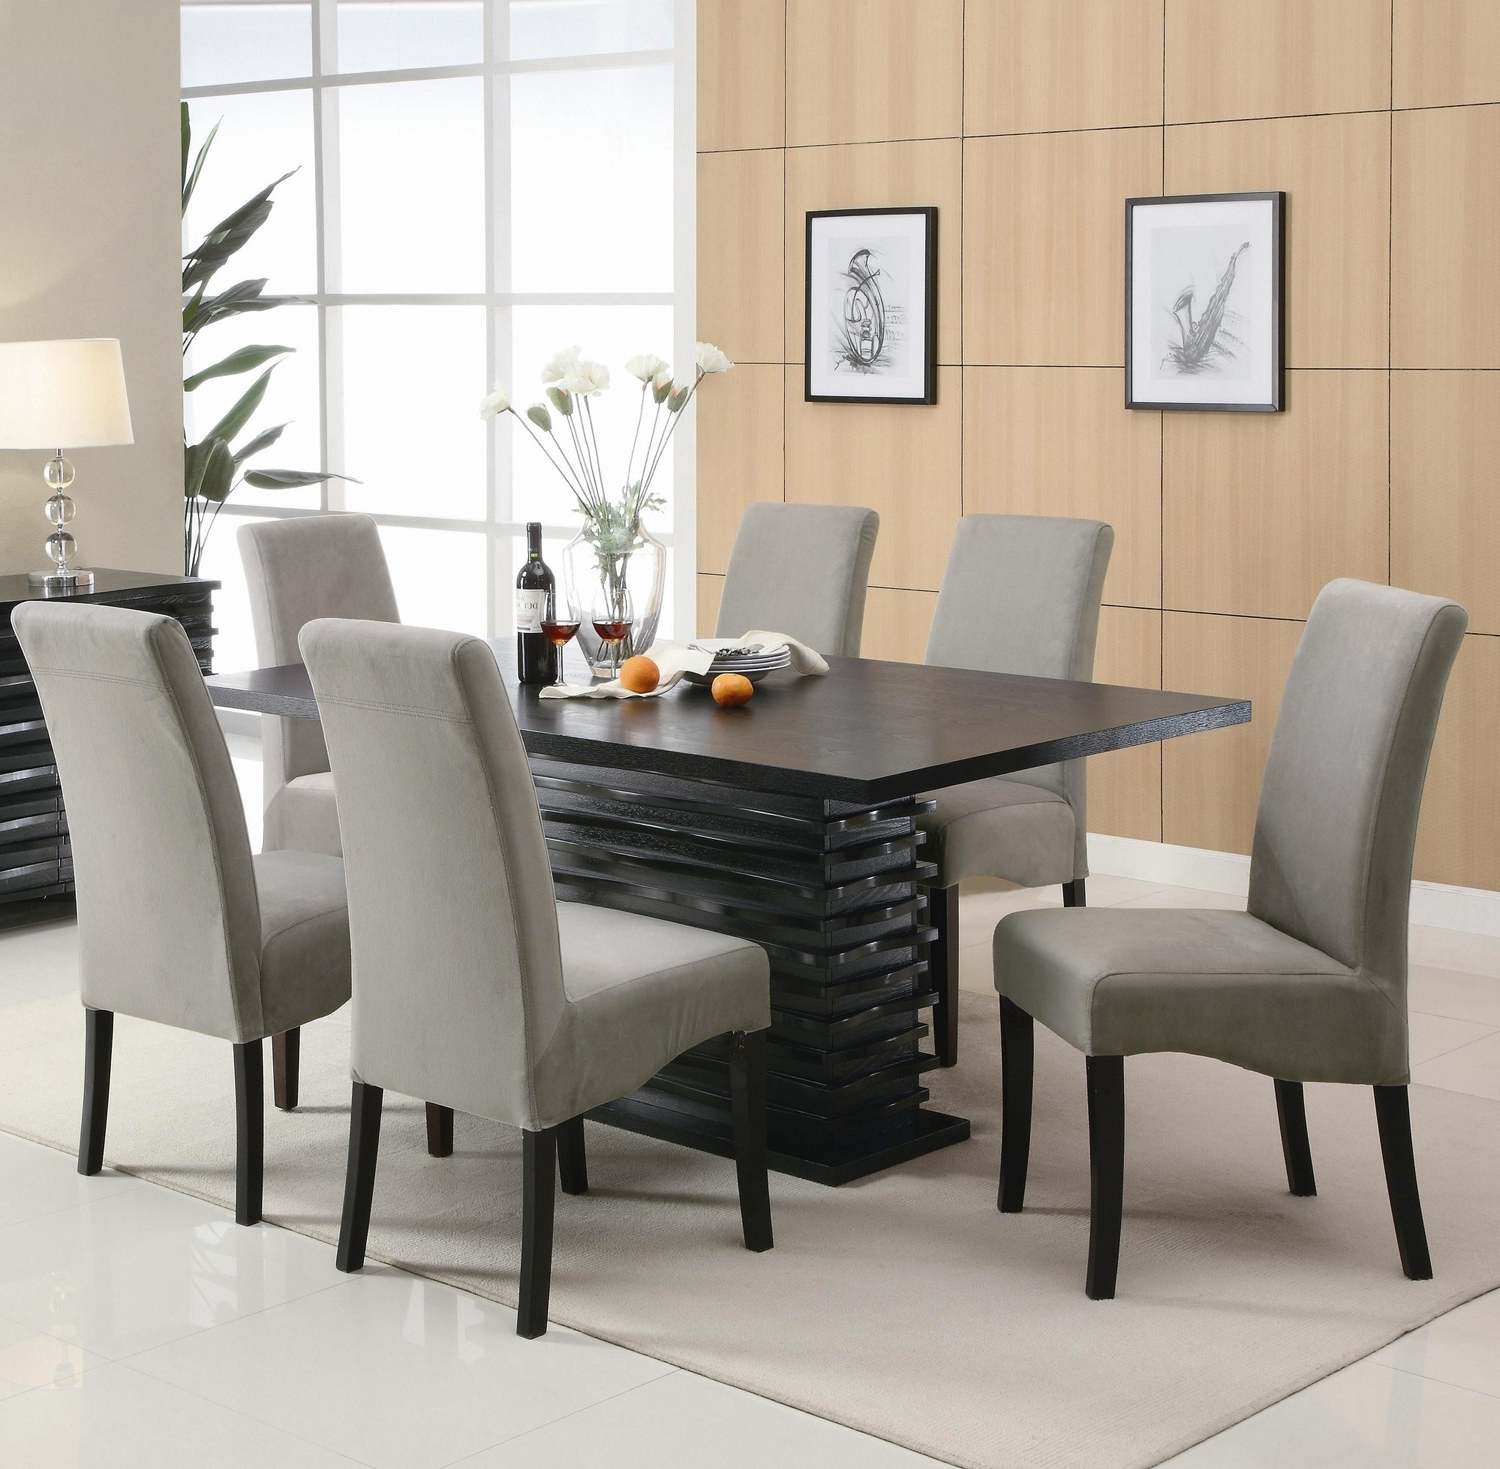 Preferred Contemporary Dining Furniture With Regard To Stanton Black Contemporary Dining Table For $519.94 – Furnitureusa (Gallery 19 of 25)